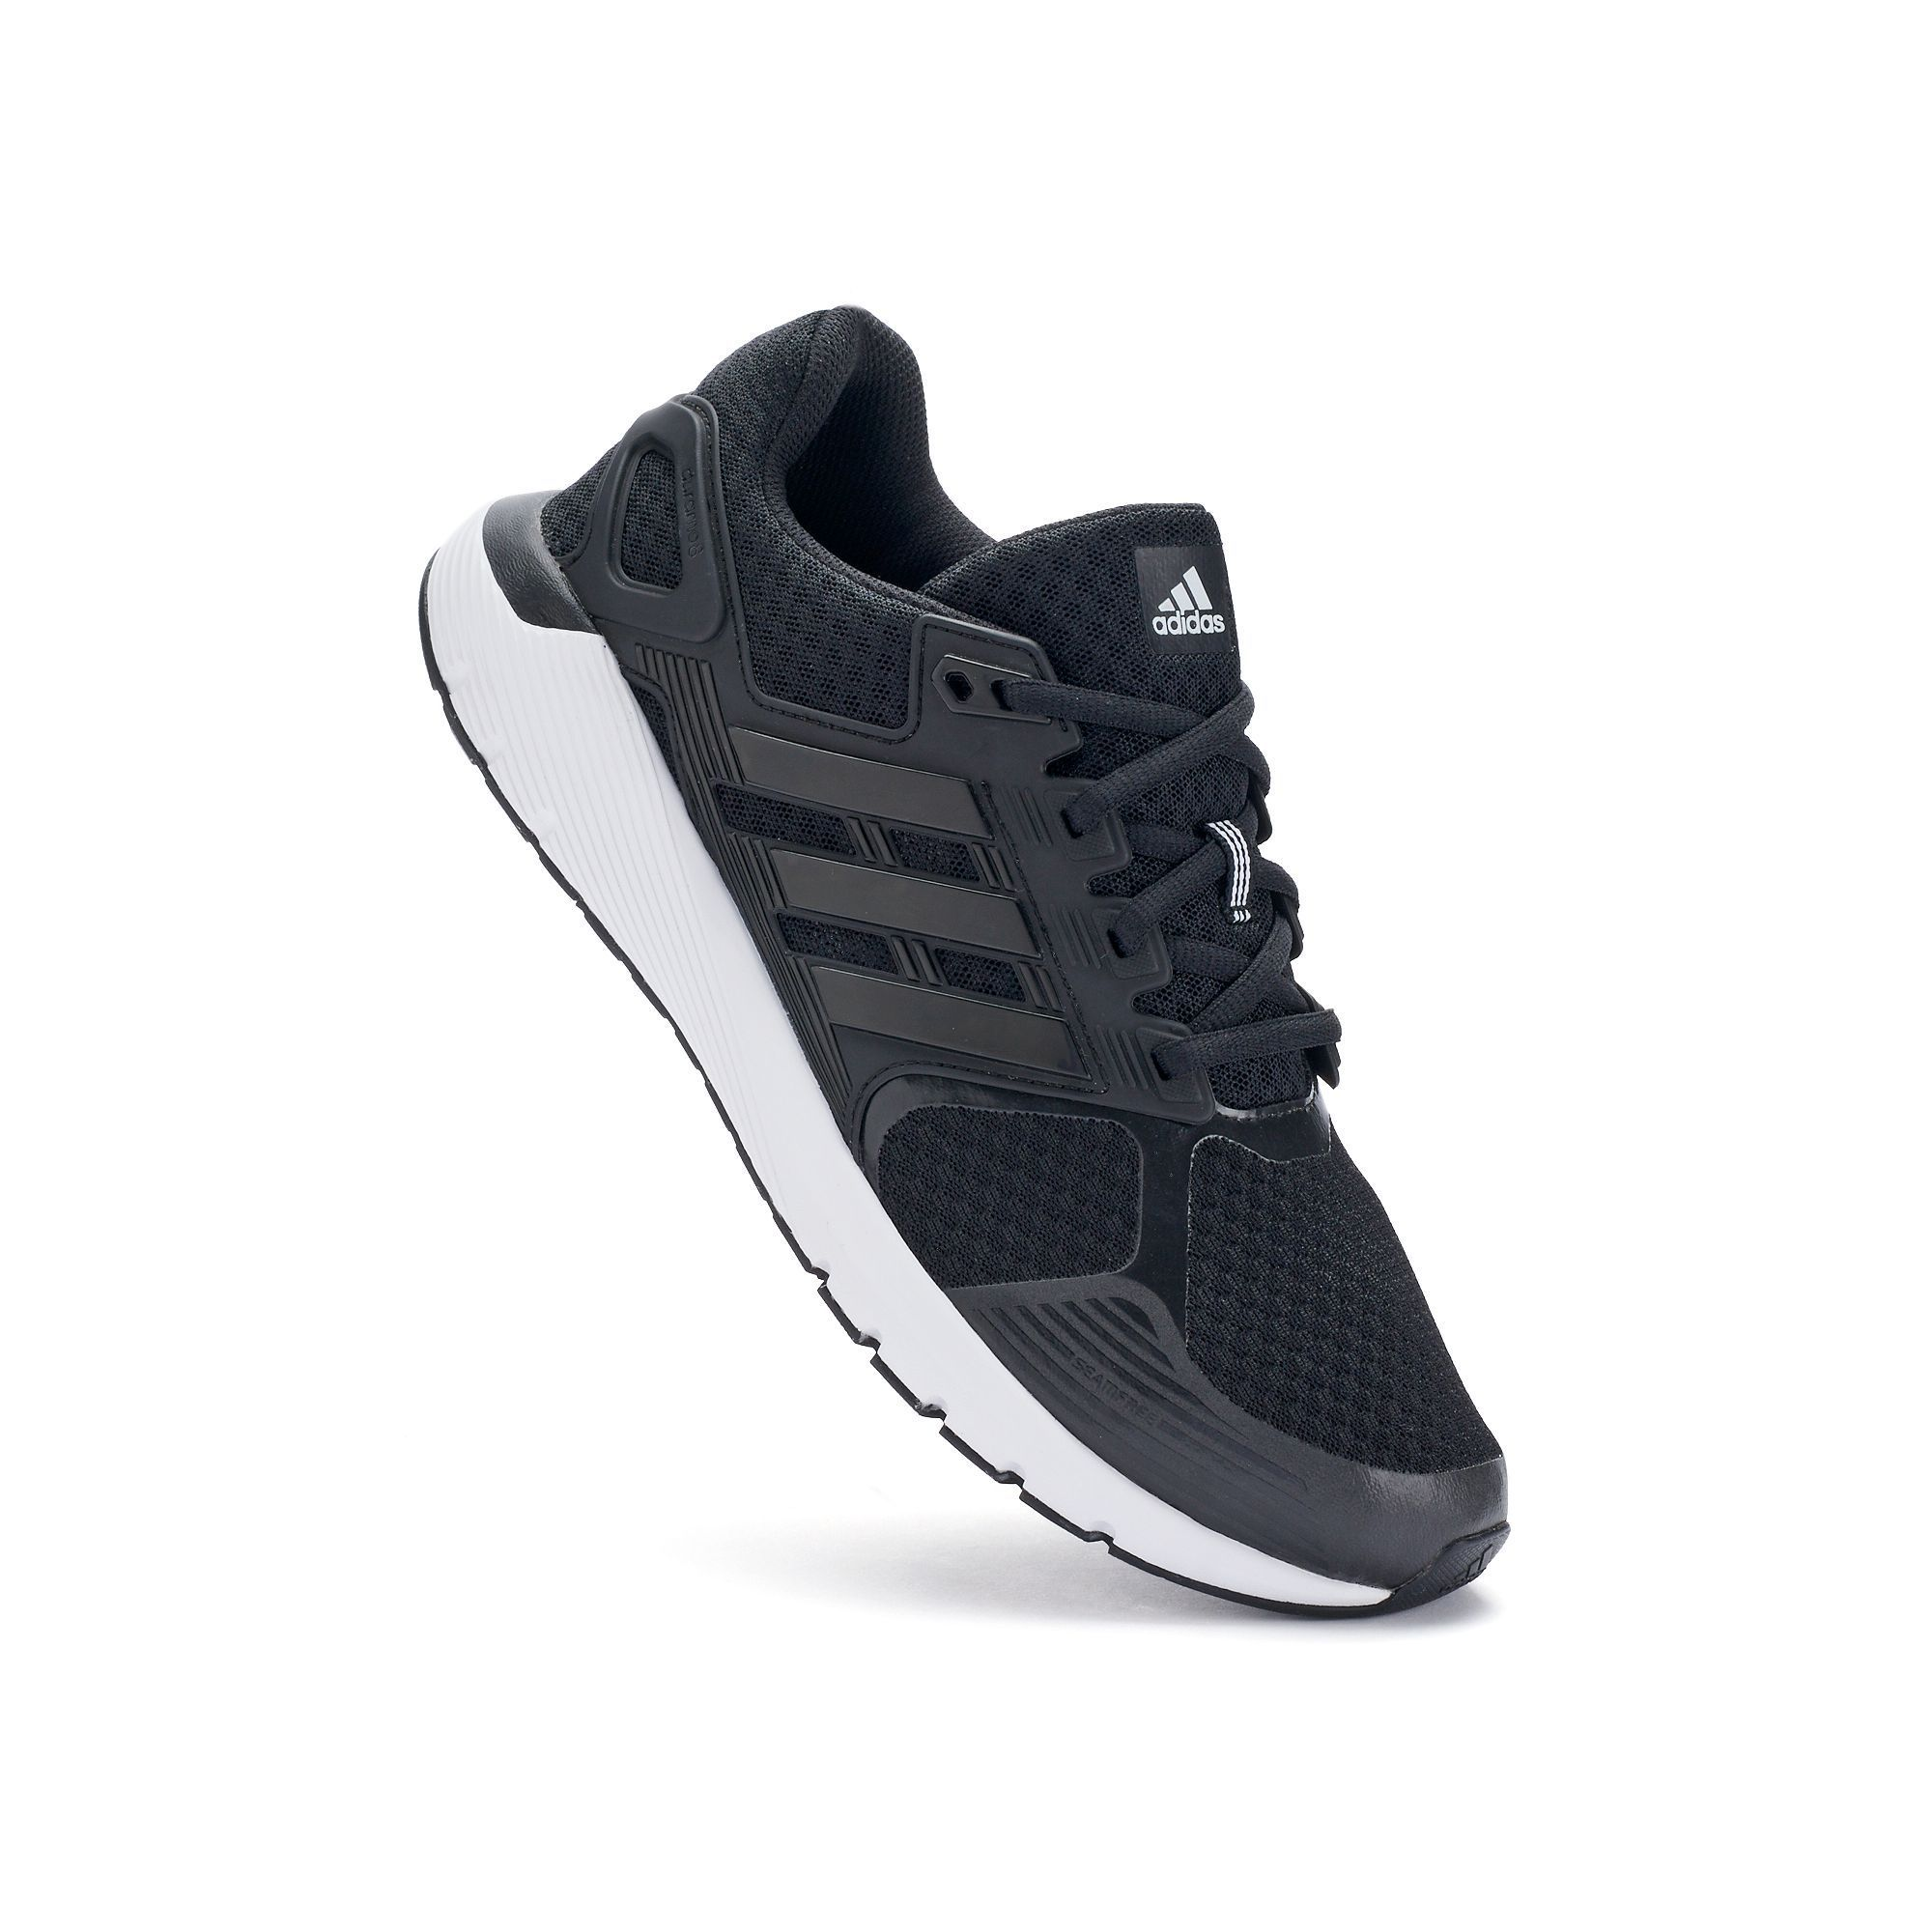 adidas Duramo 8 Men's Running Shoes | Running shoes for men